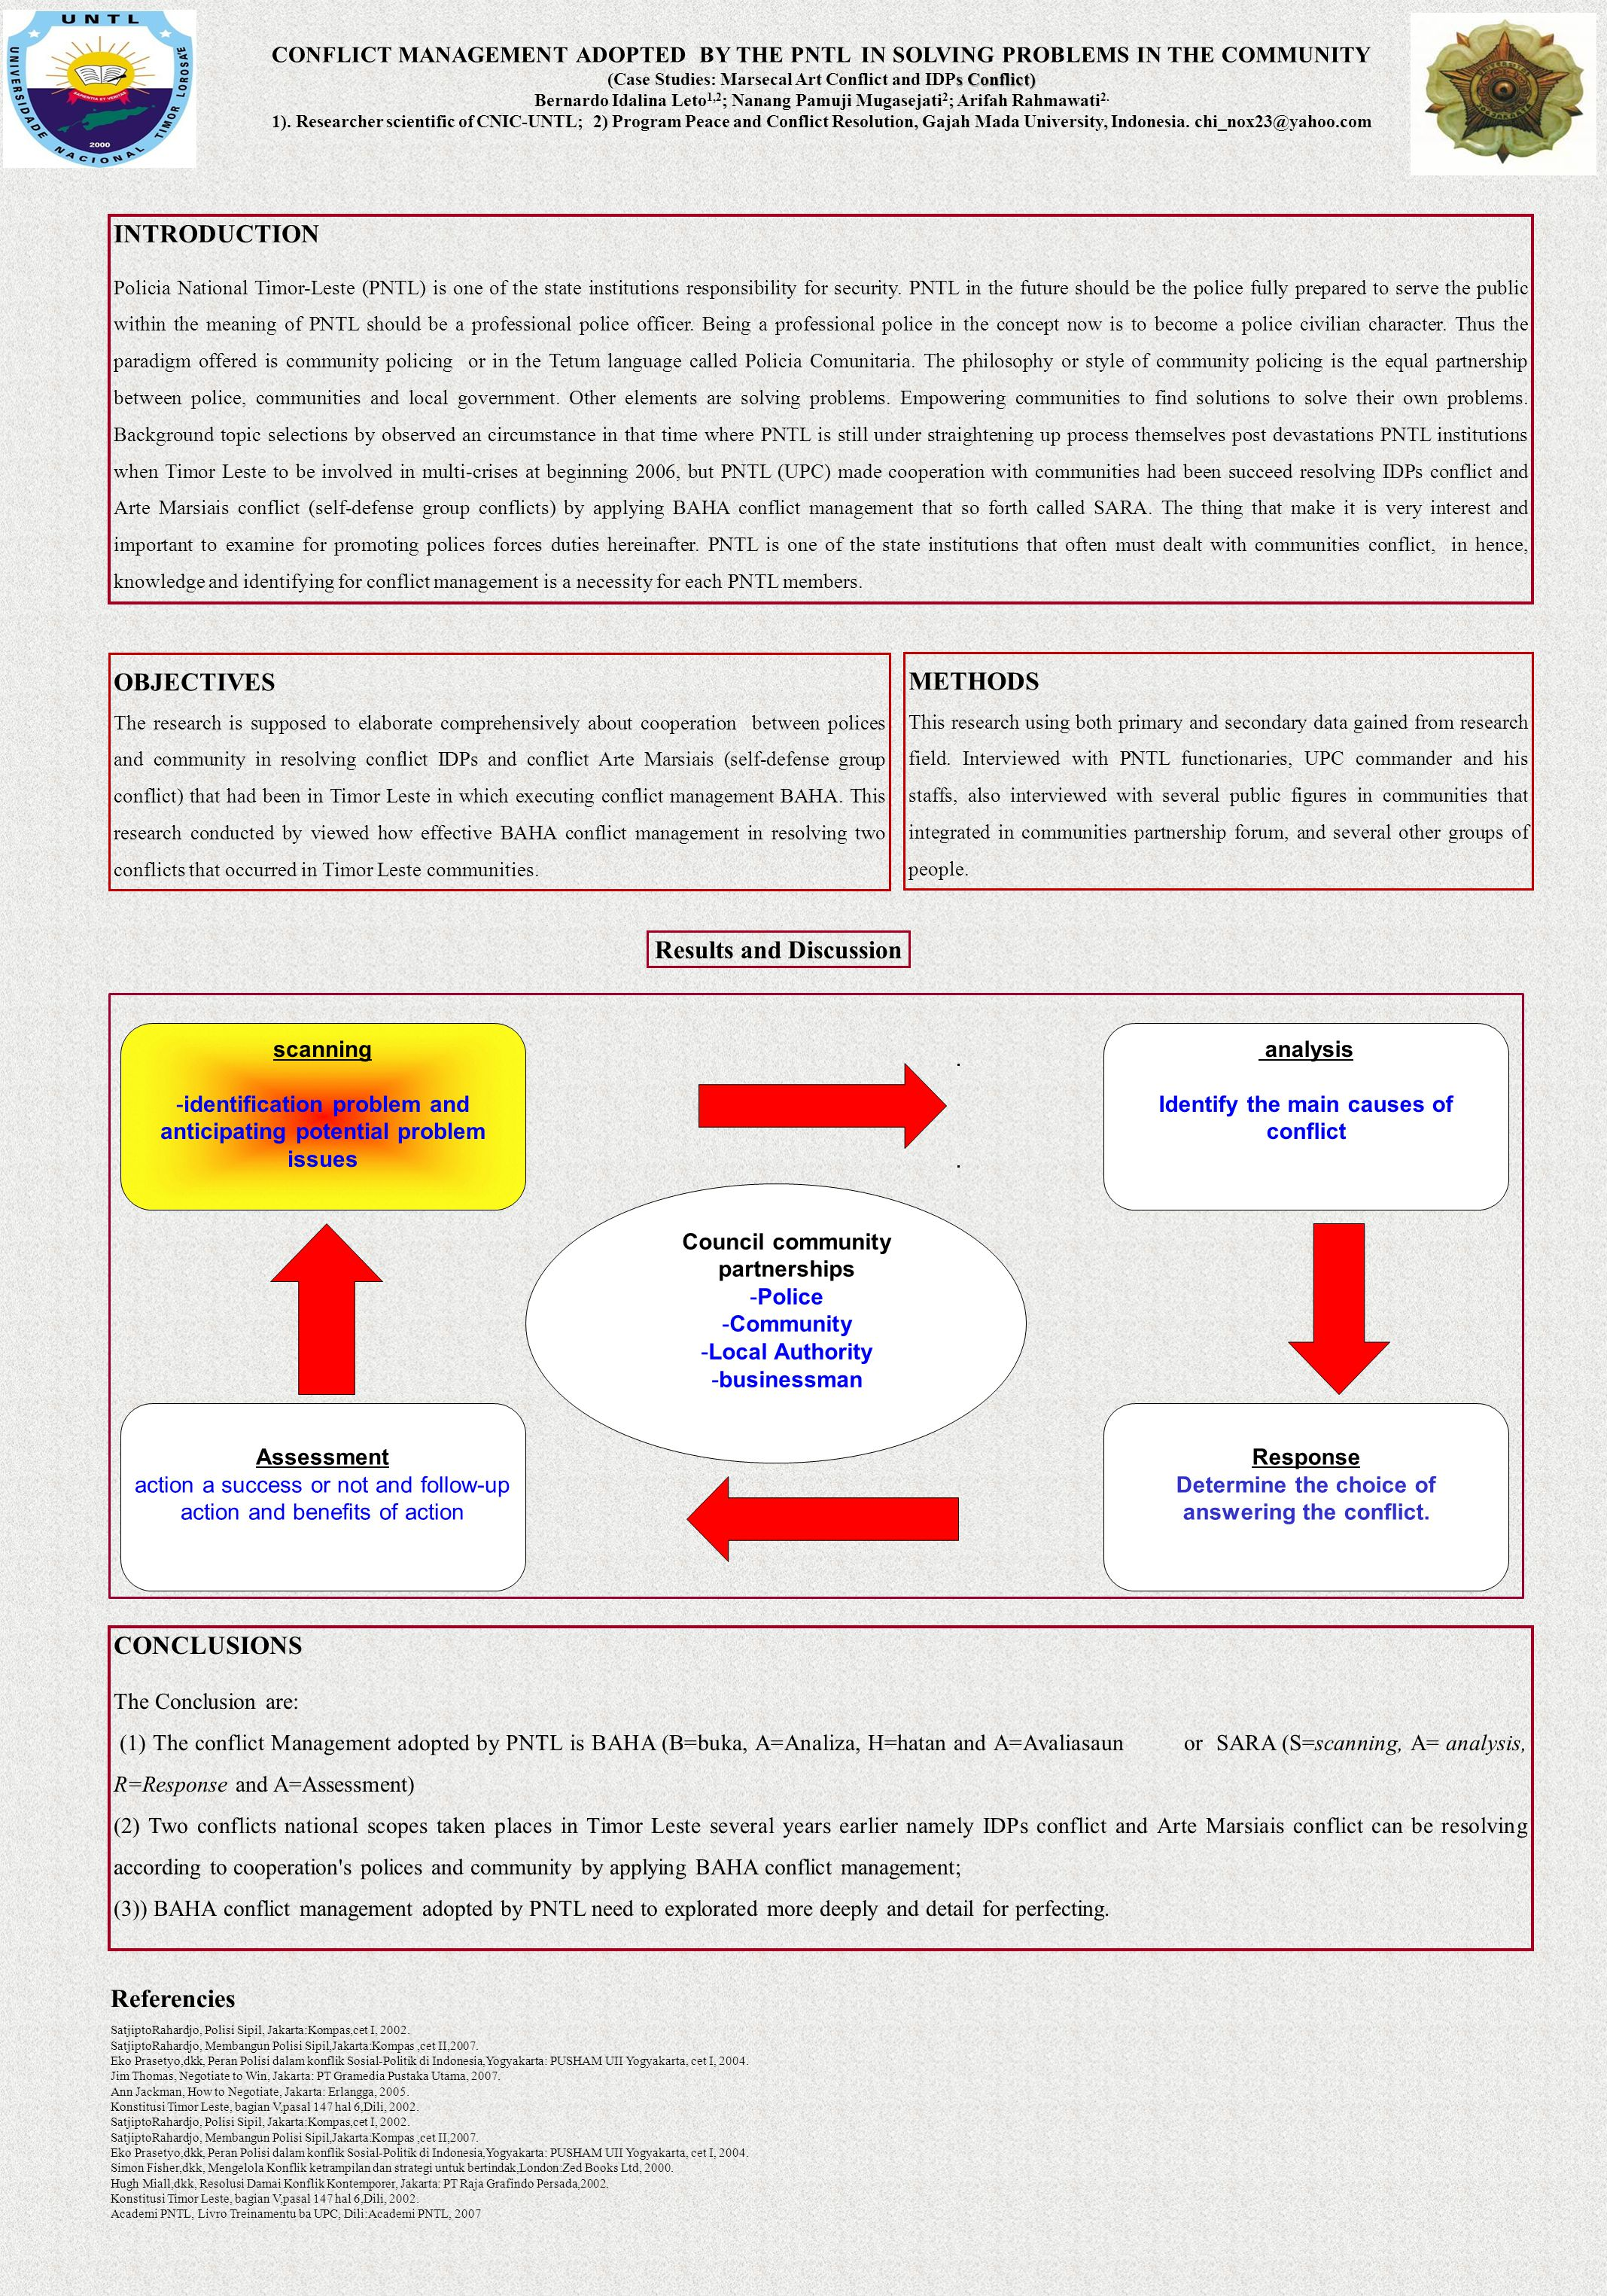 CONFLICT MANAGEMENT ADOPTED BY THE PNTL IN SOLVING PROBLEMS IN THE COMMUNITY s Conflict) (Case Studies: Marsecal Art Conflict and IDPs Conflict) Berna